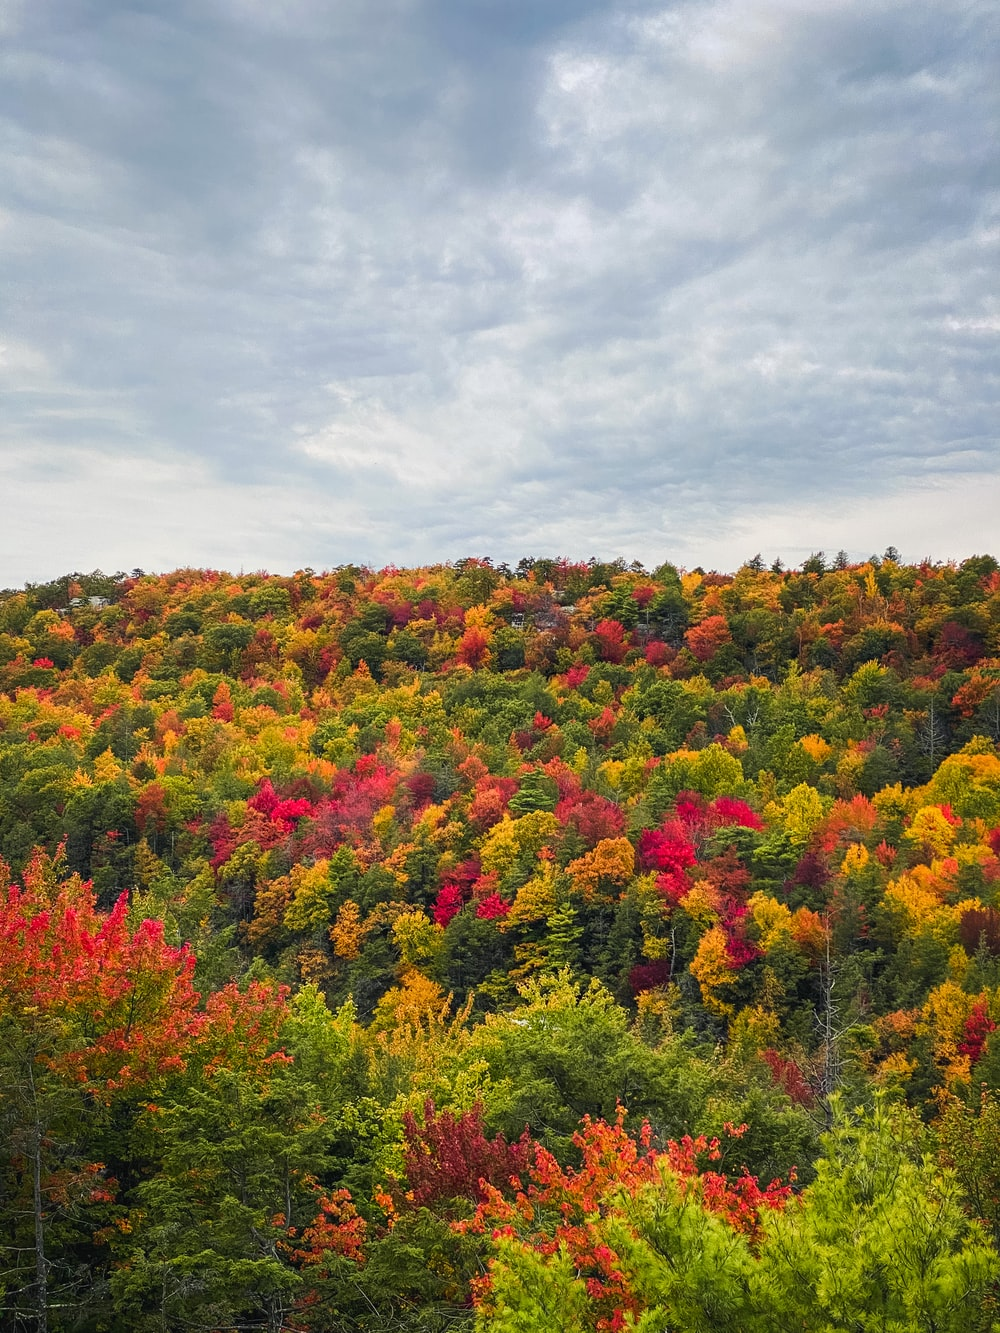 red yellow and green trees under white clouds during daytime